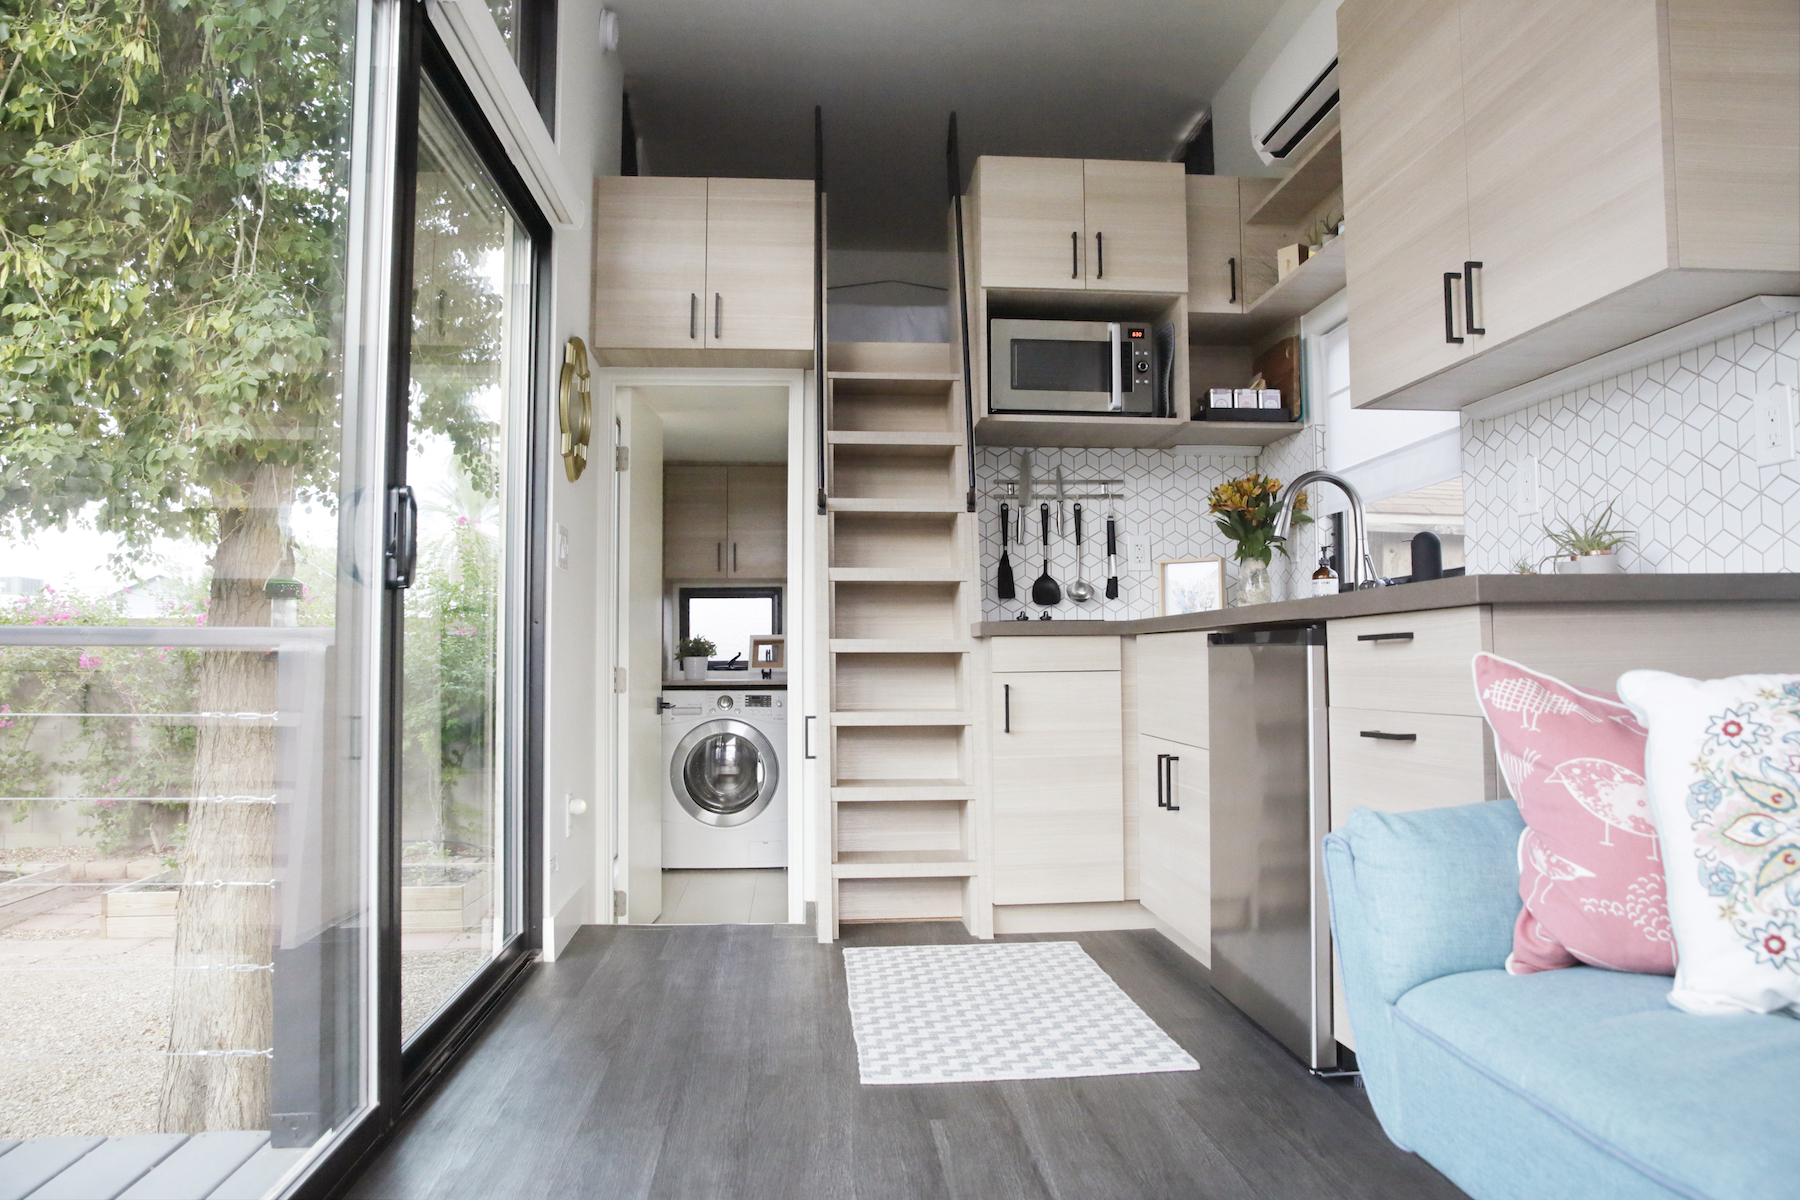 Space Saving Decor Ideas From Inspiring Tiny Homes Real Simple